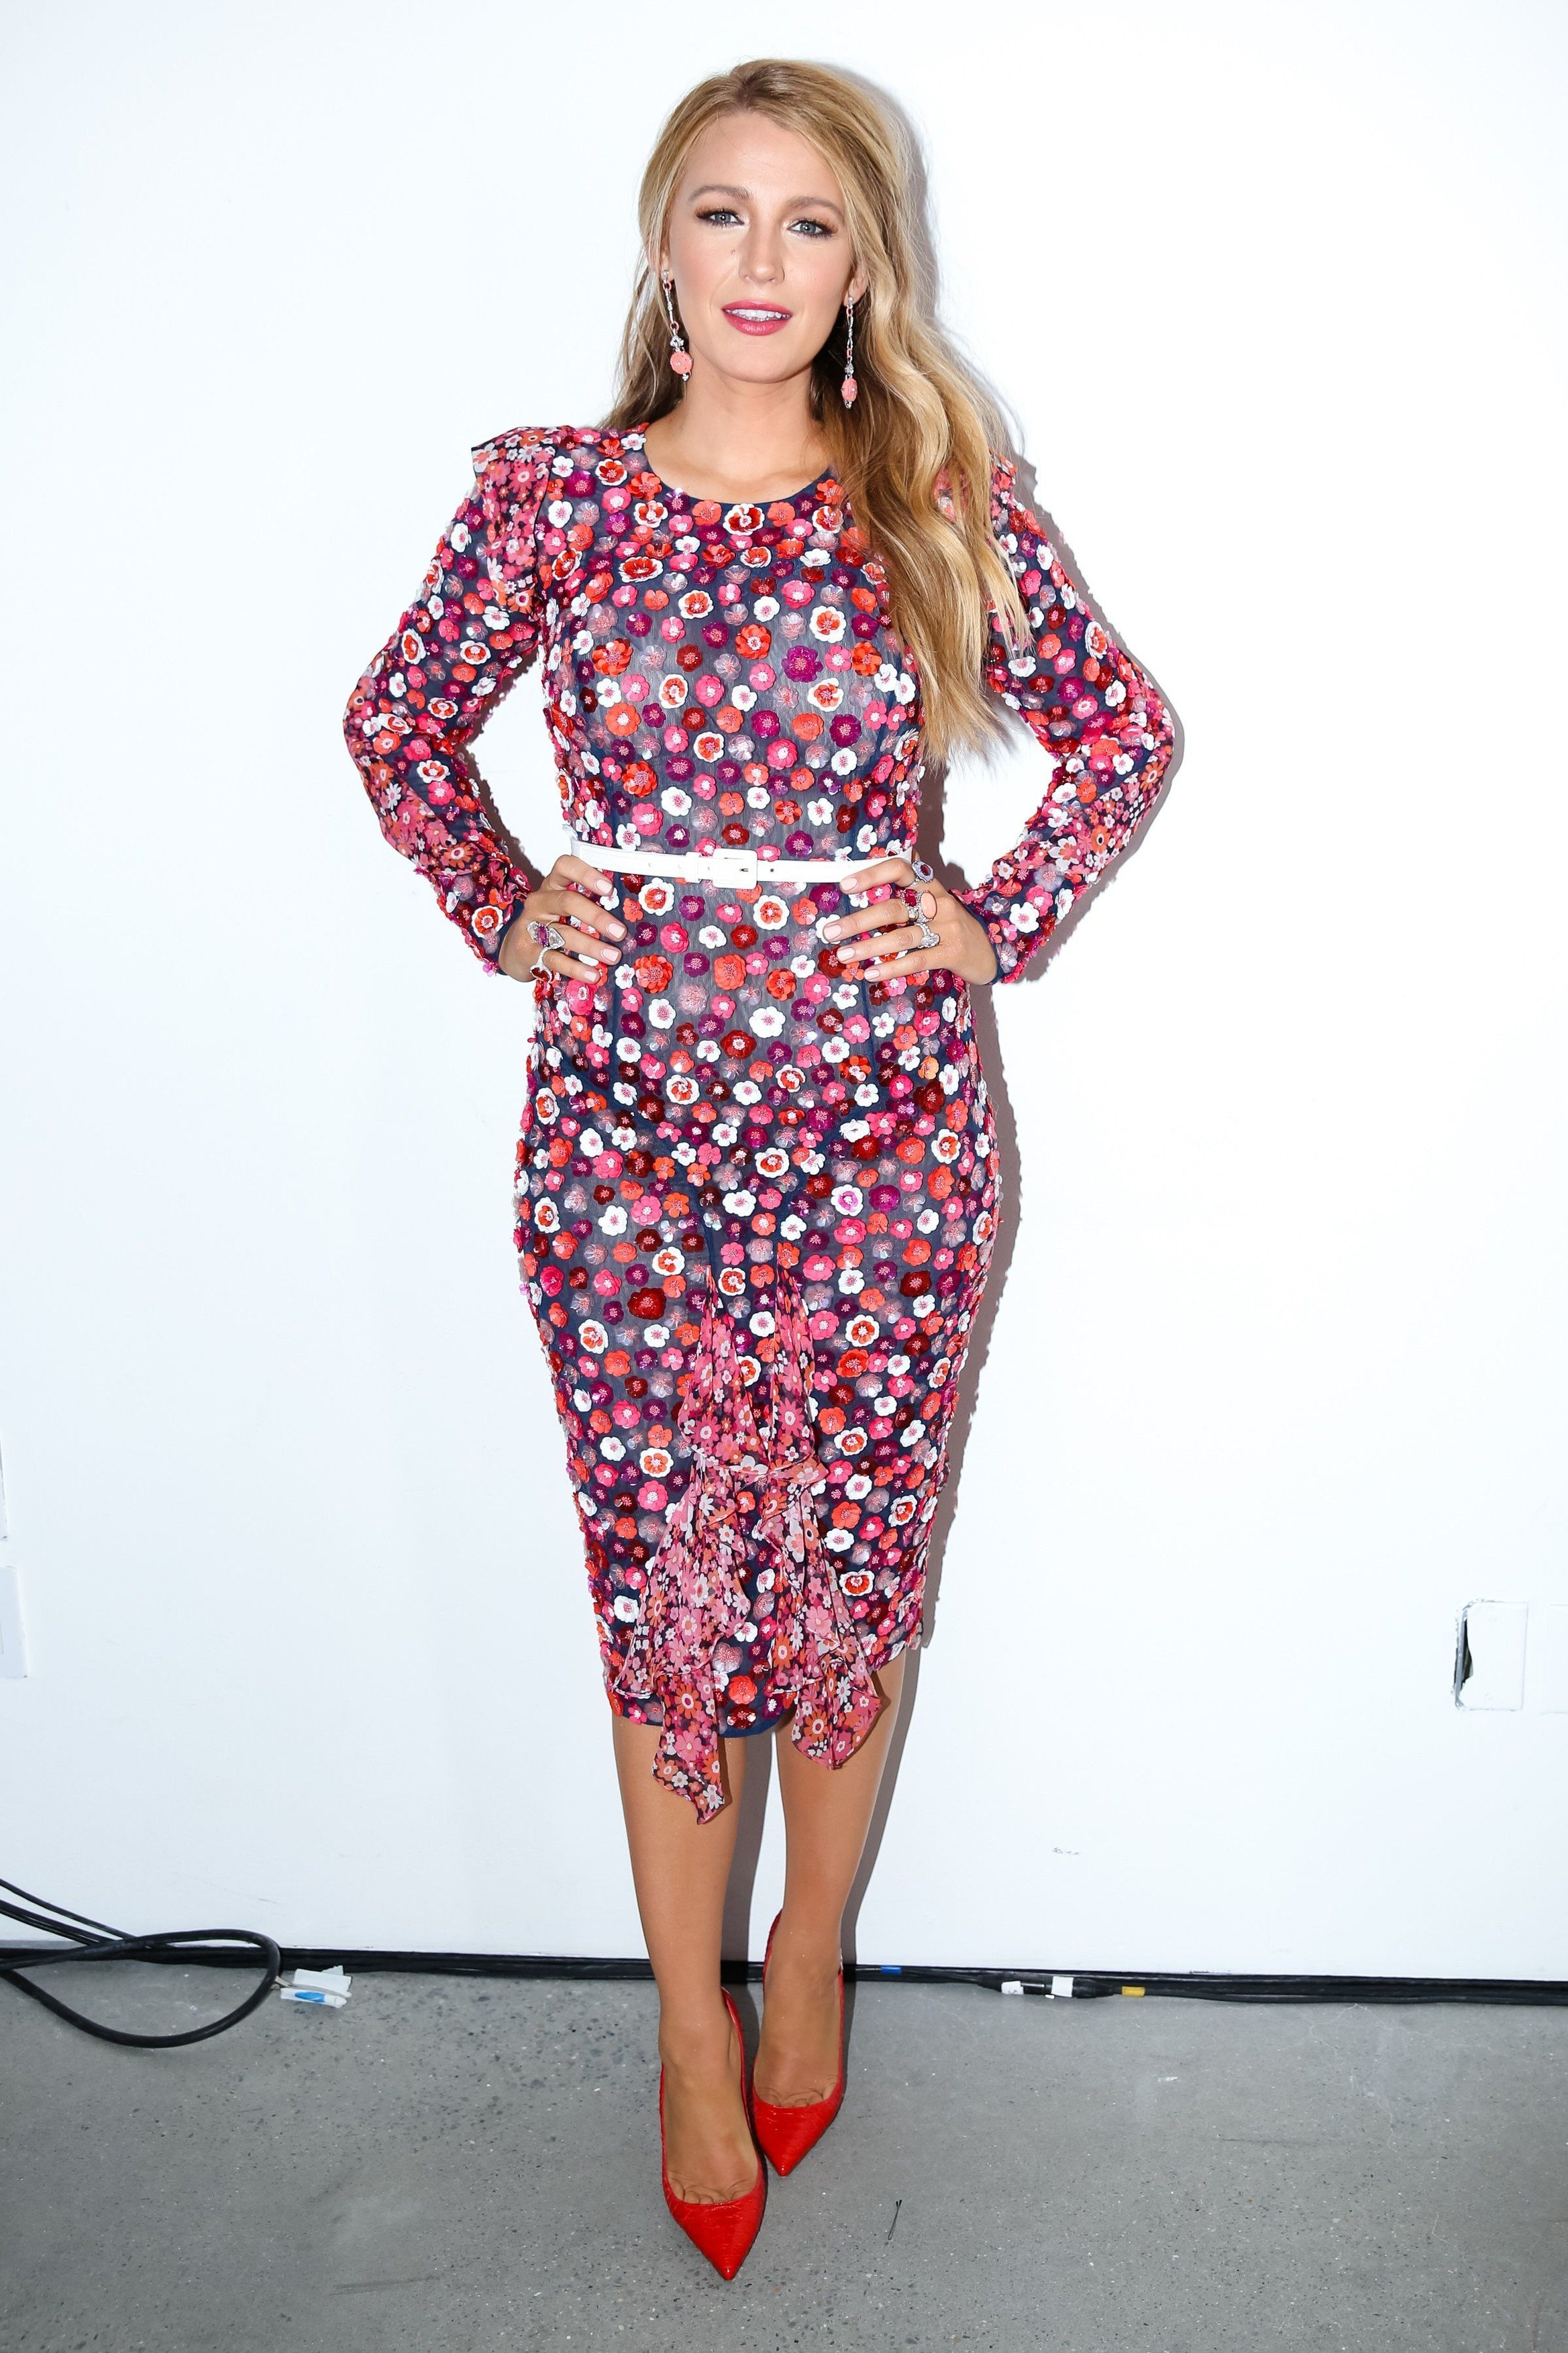 BlakeLively334